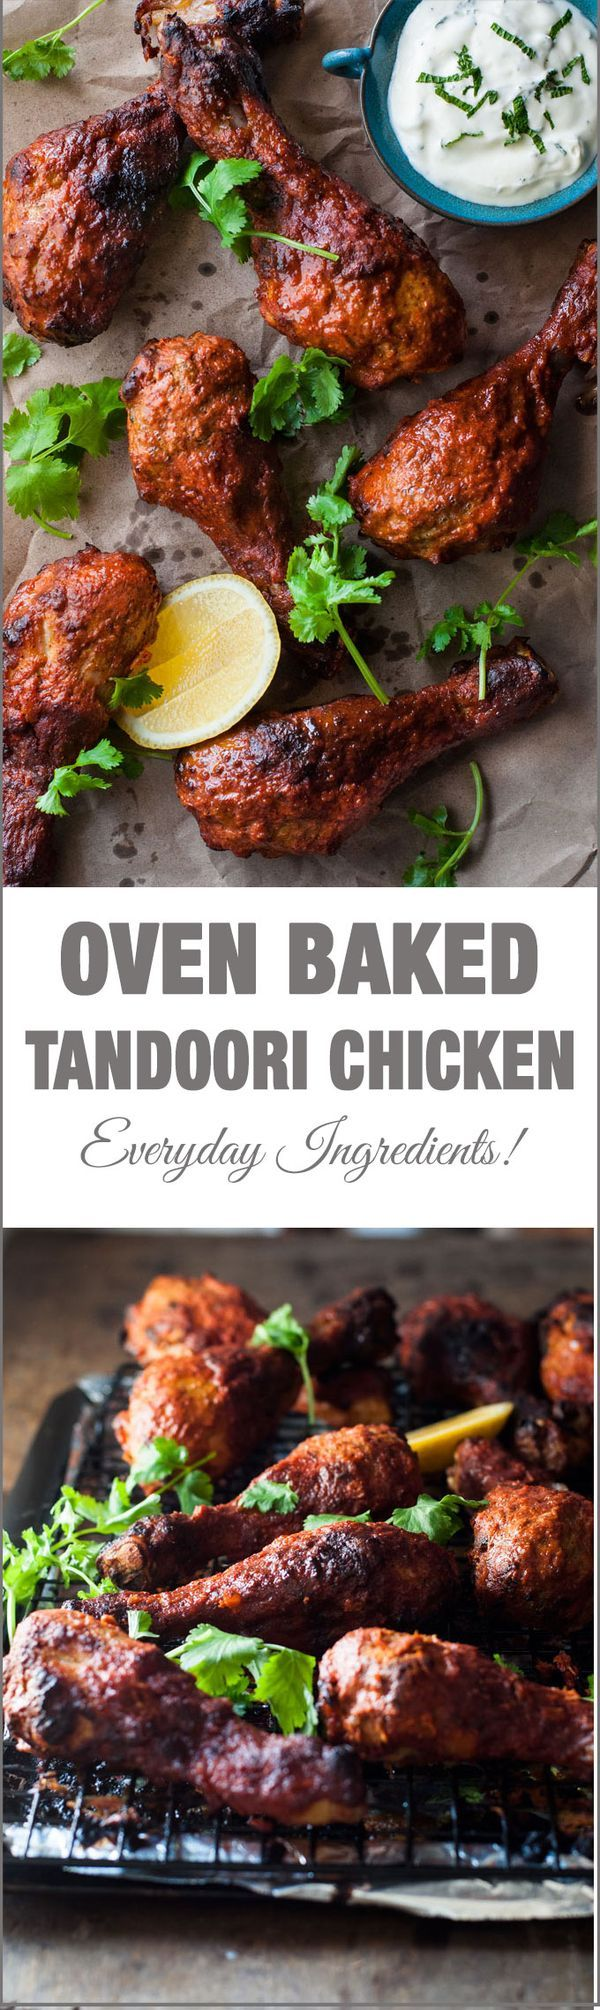 Oven Baked Tandoori Chicken - made from scratch with everyday ingredients, the flavour of this is authentic!